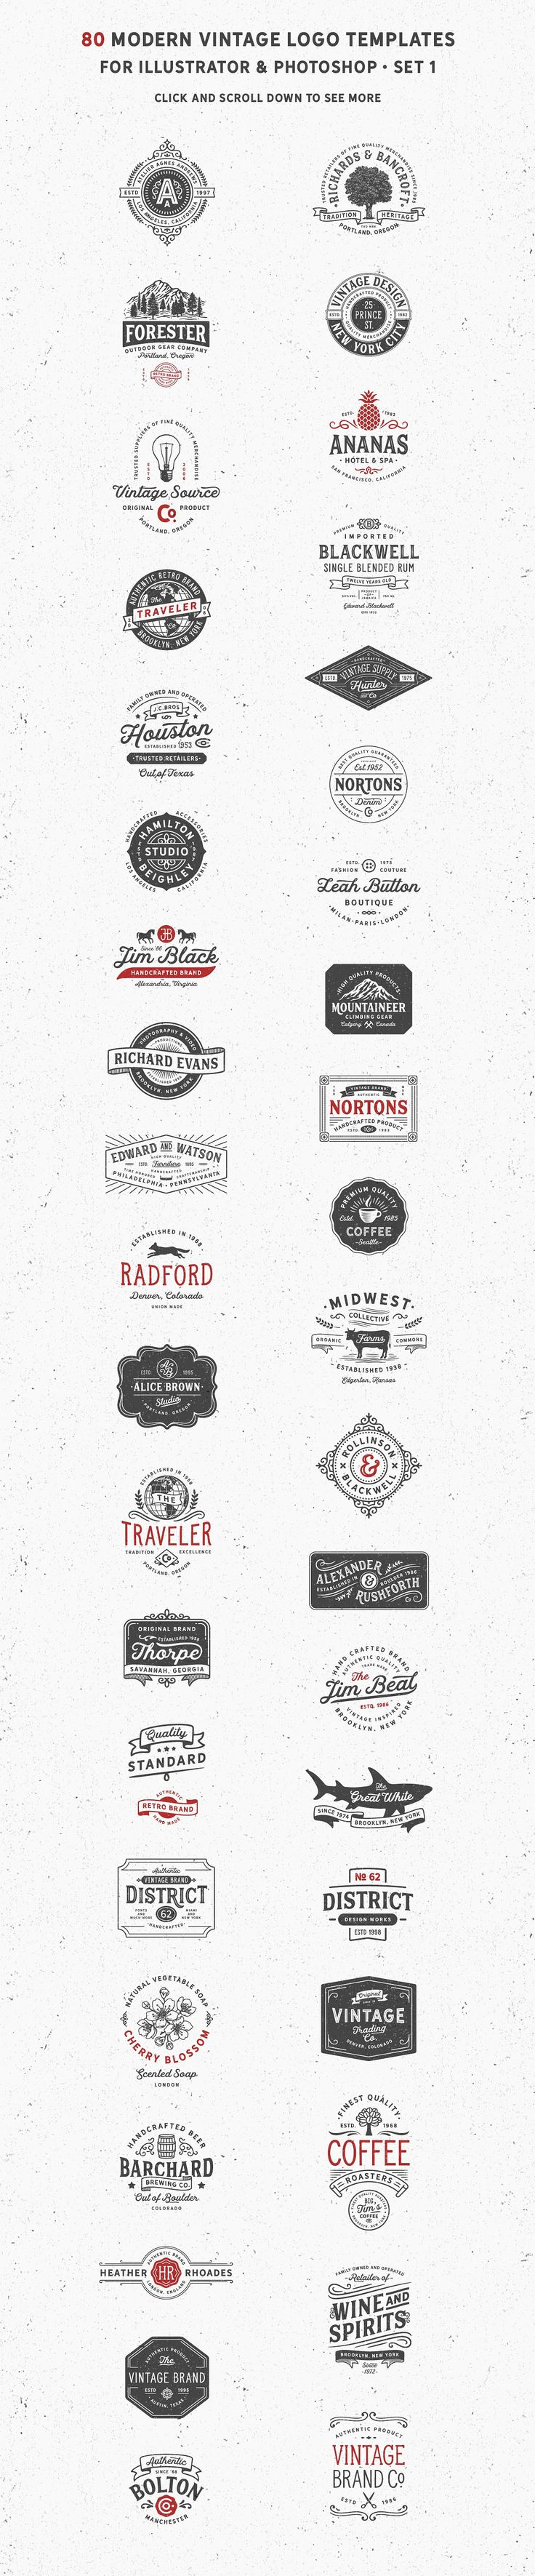 80 Modern Vintage Logos vol 2 by DISTRICT 62 studio on @creativemarket